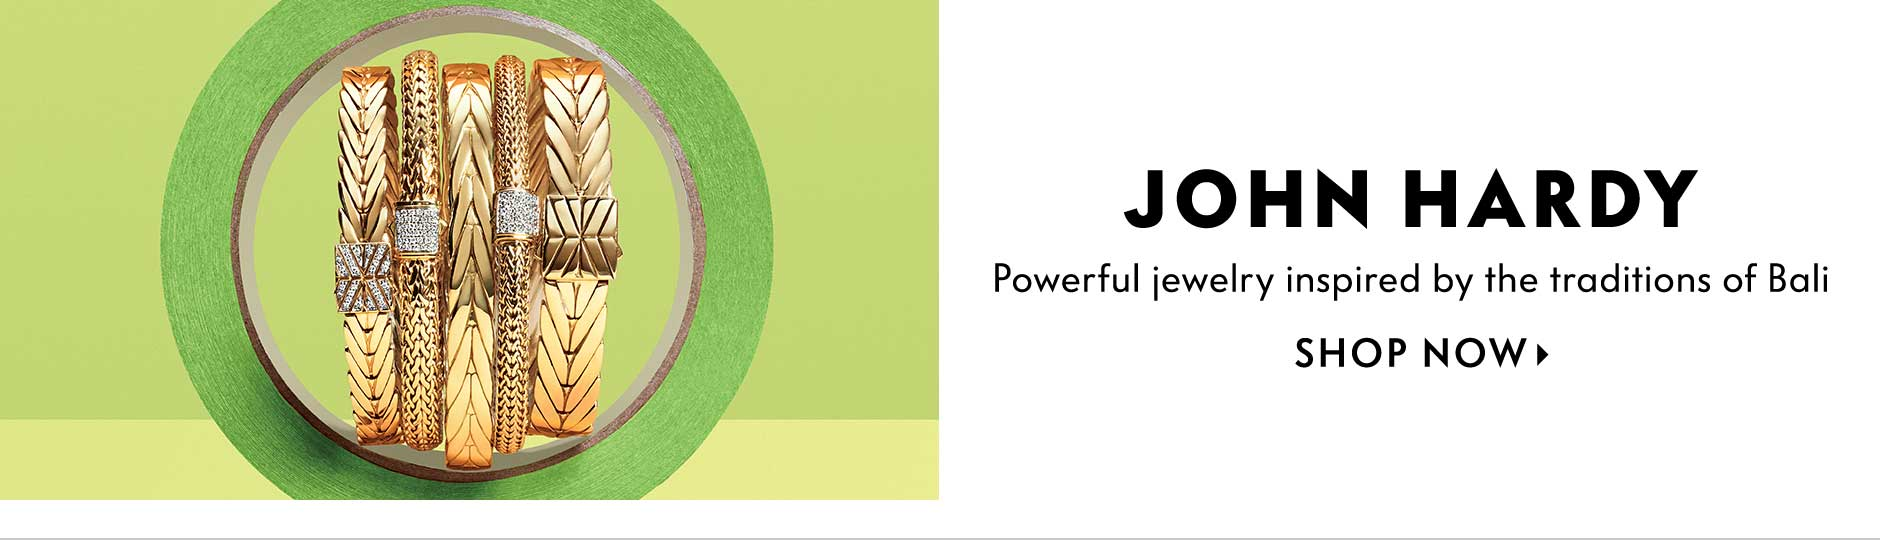 John Hardy - Powerful jewelry inspired by the traditions of Bali